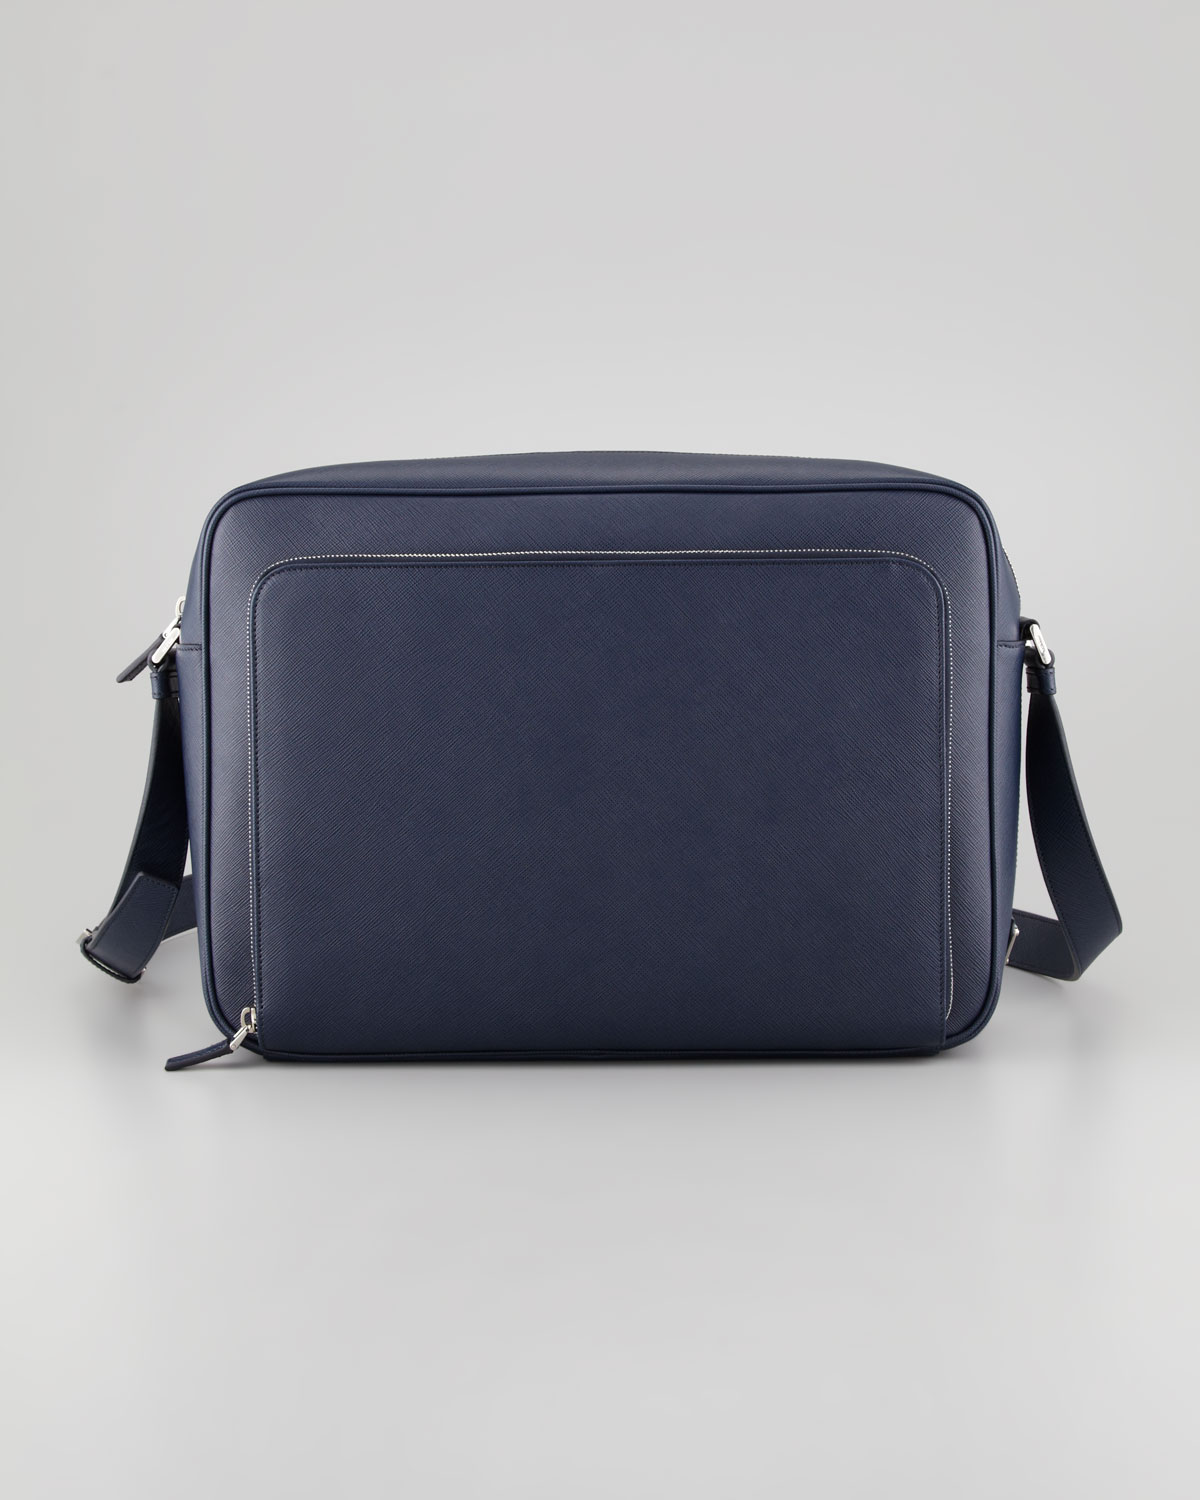 prada brown tote bag - prada navy bag